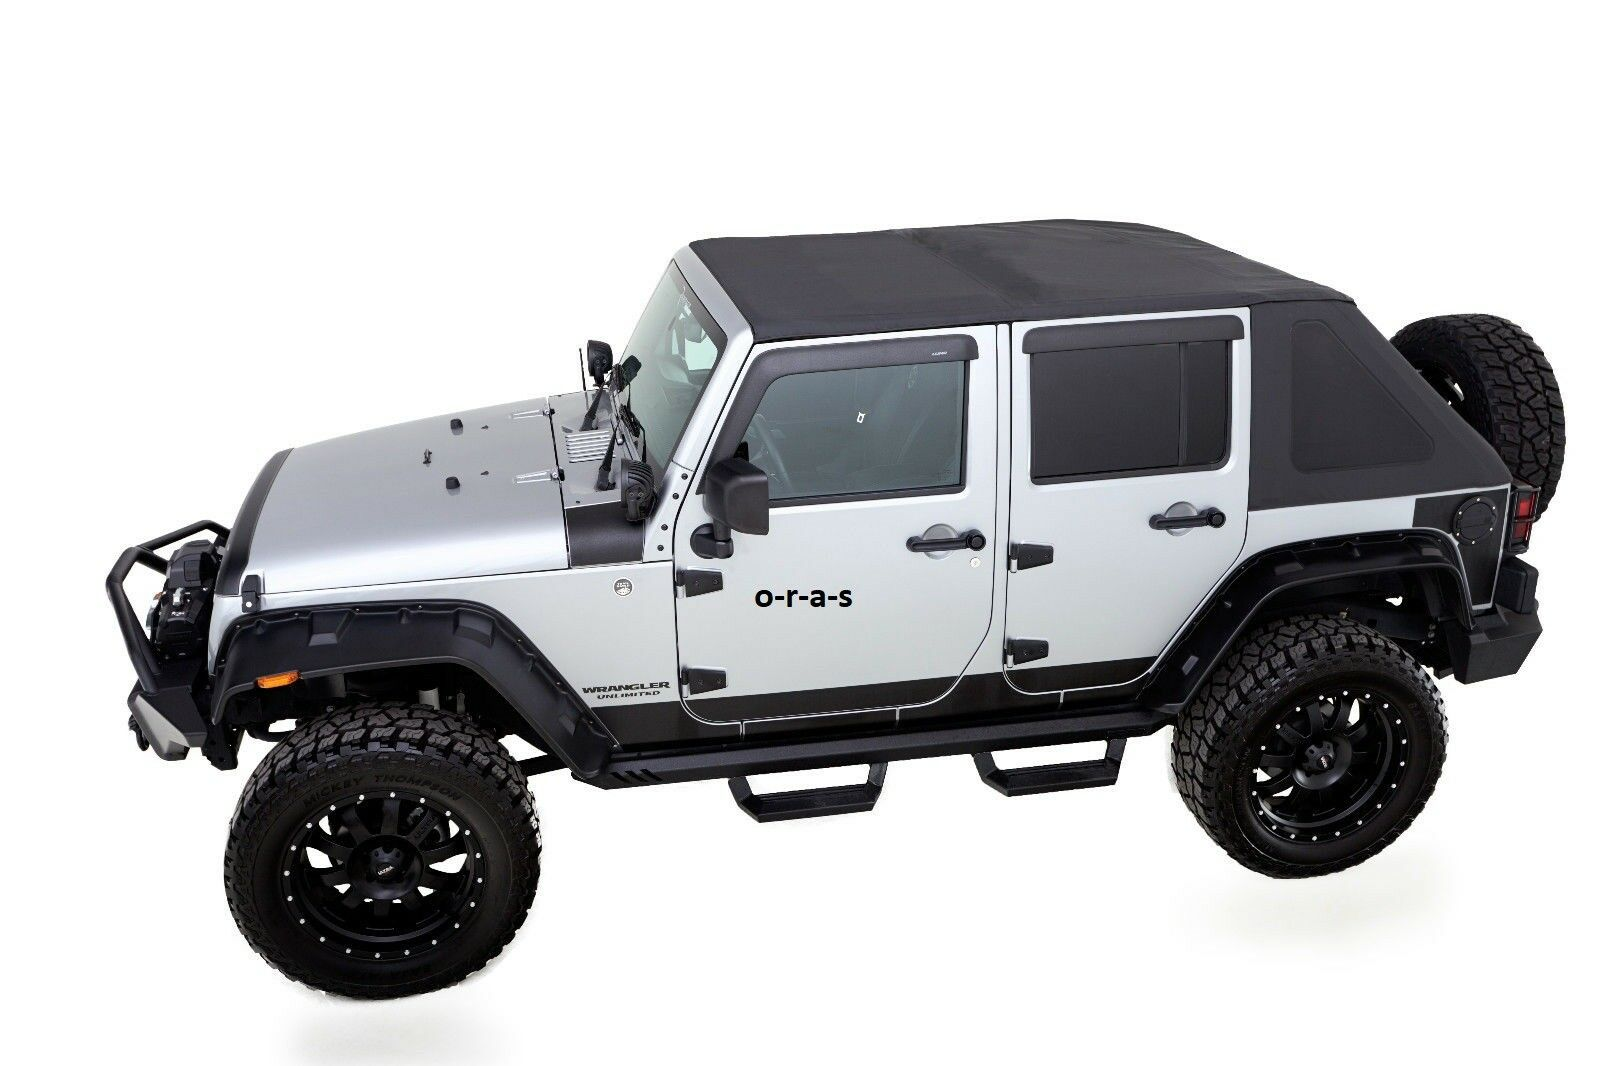 2007 2016 Jeep Wrangler Unlimited 4 Door Trailview Frameless Soft Top  W/Hardware 1 Of 6Only 1 Available See More